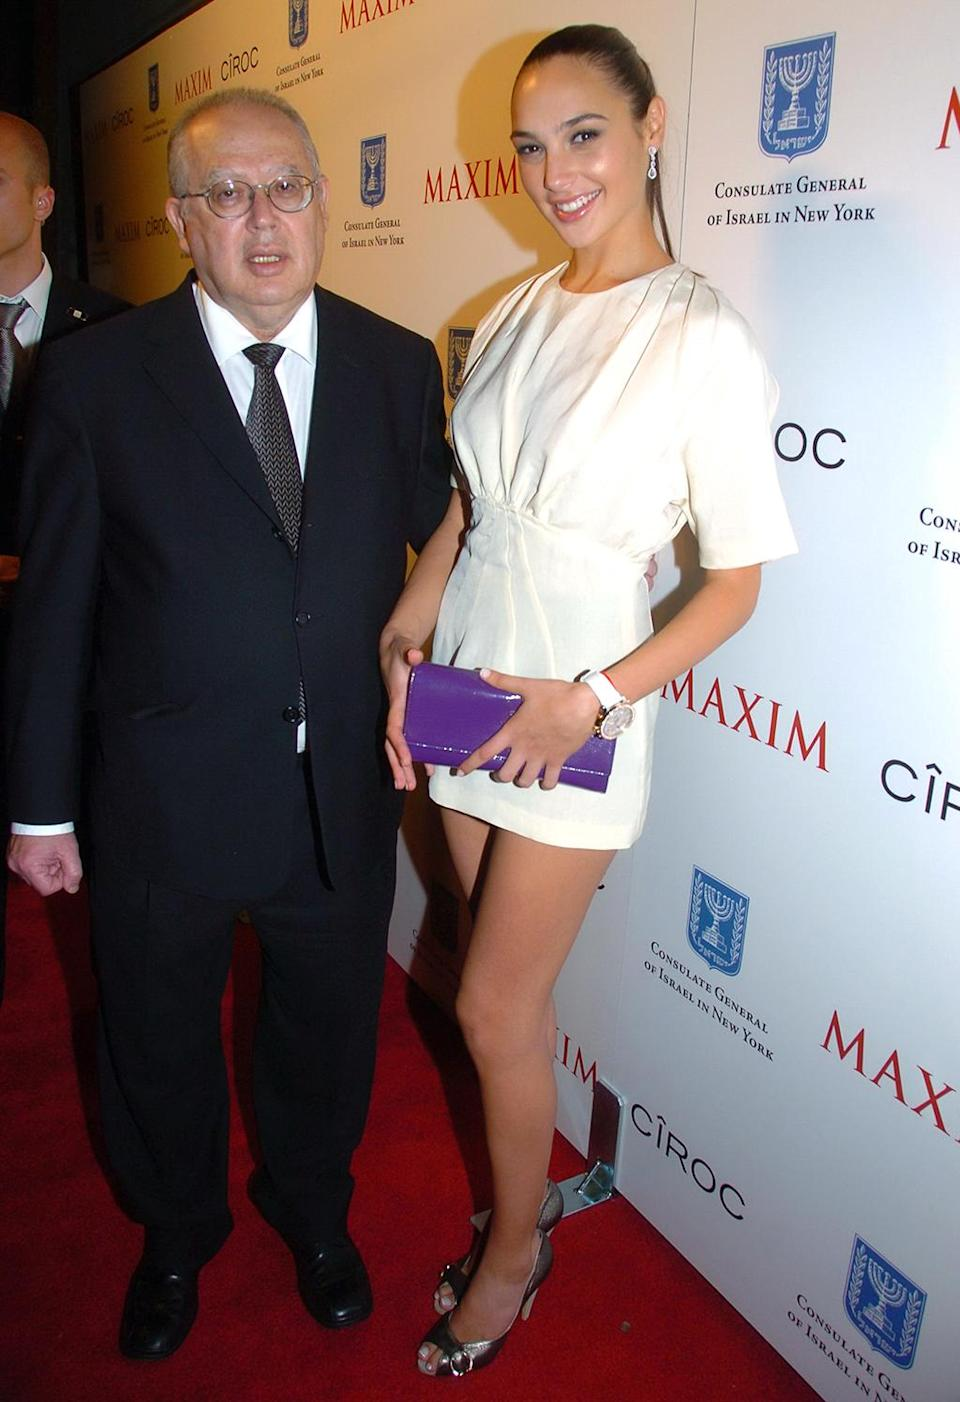 """<p>After serving two years in the Israel Defense Forces, the 21-year-old took part in a Maxim photo shoot titled """"Women of the Israeli Army."""" The former Miss Israel posed with Israeli Ambassador Arye Mekel at the issue's celebration in New York on June 19, 2007. (Photo: John Roca/Getty) </p>"""